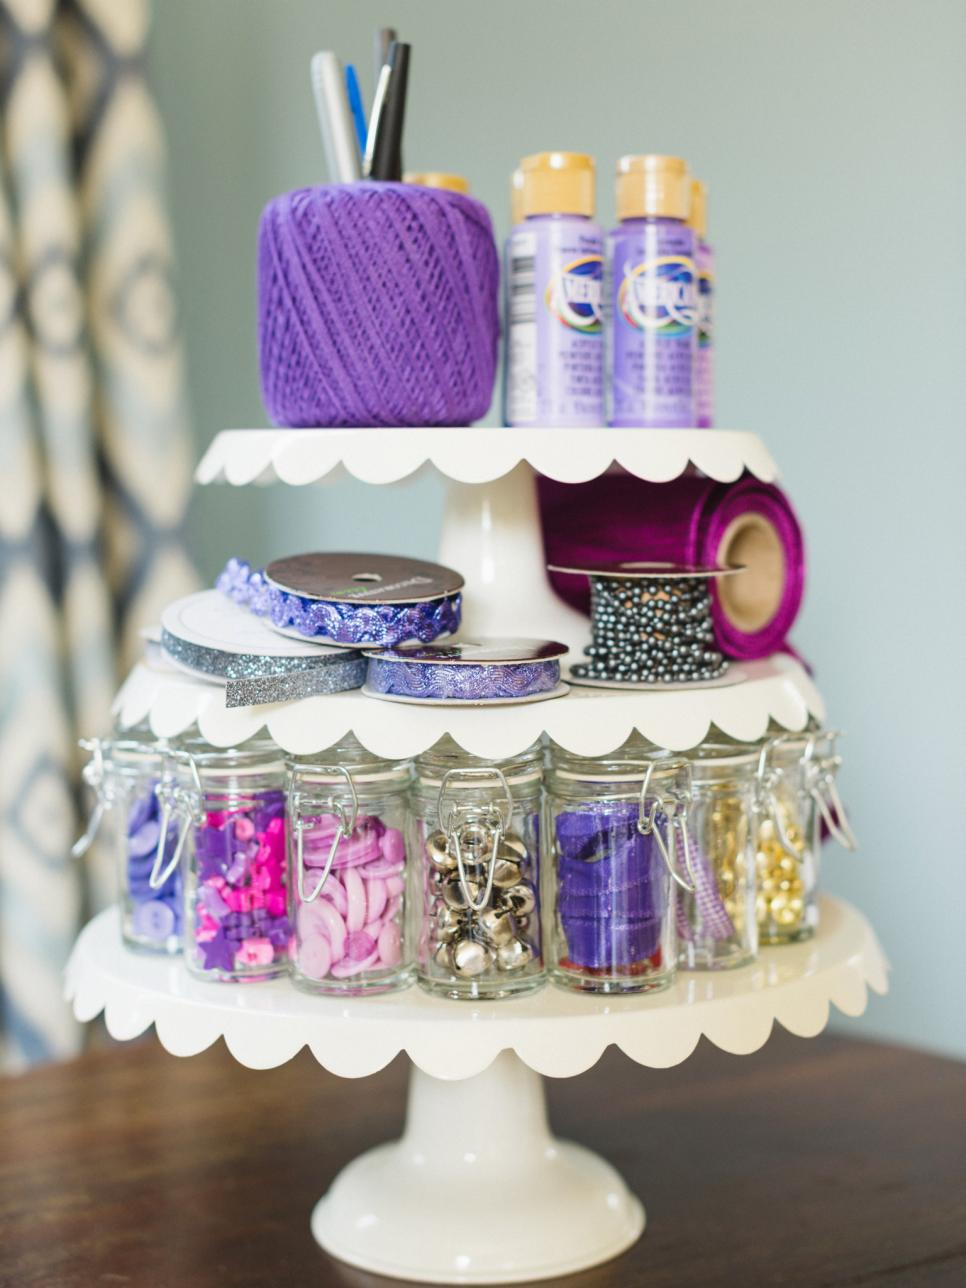 Organizing Hacks Using A Cake Stand For Storage Apartment Therapy